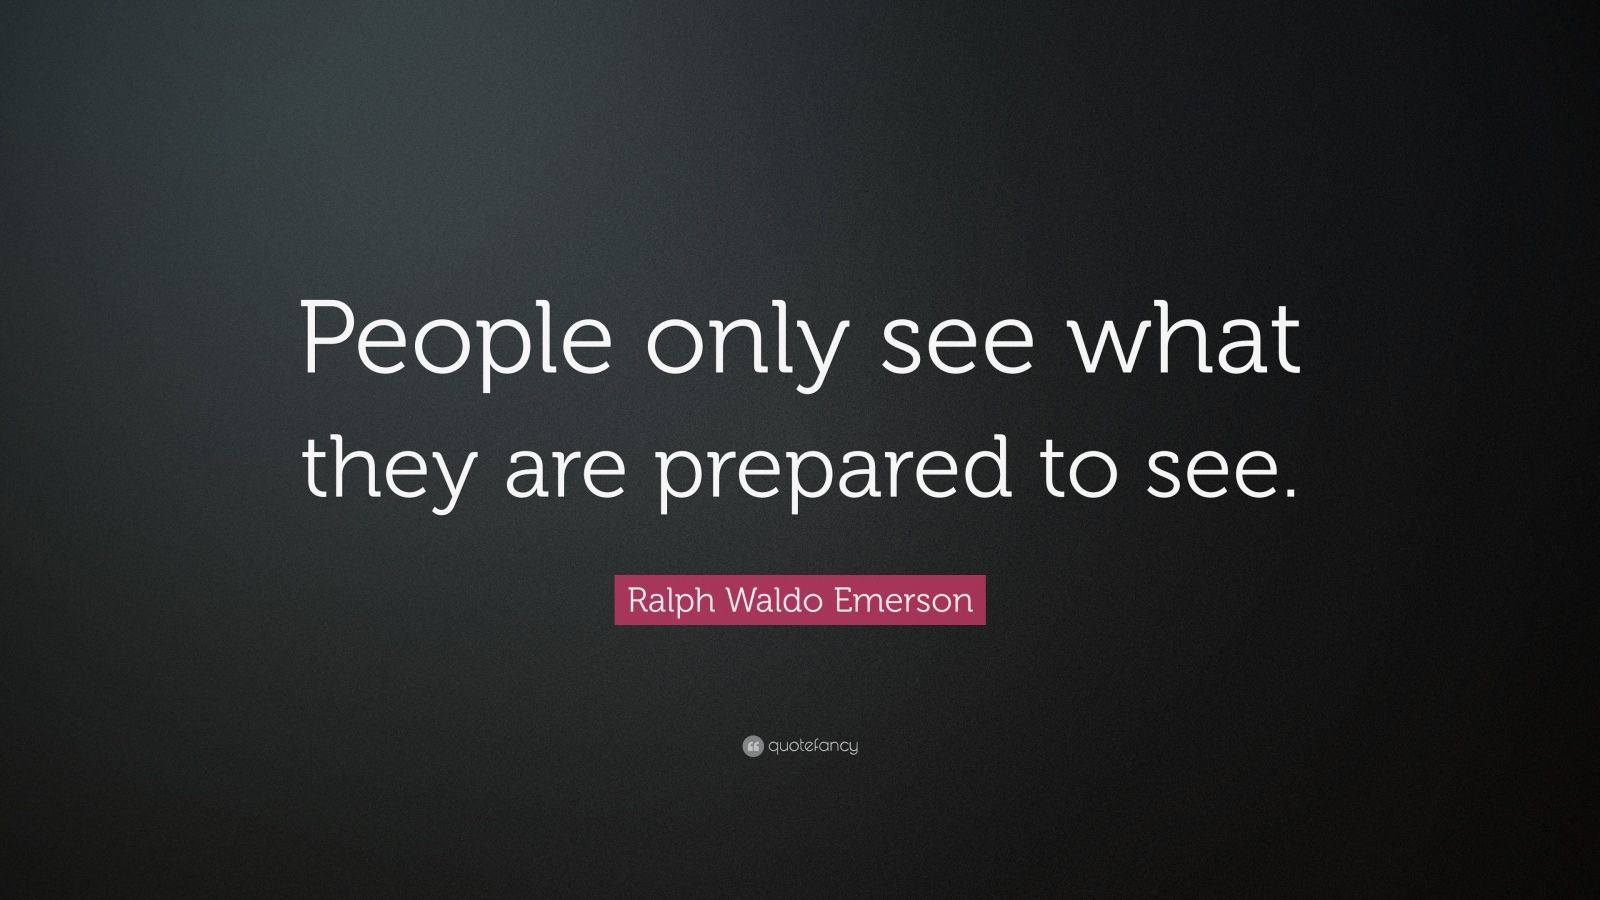 people only see what they are prepared to see